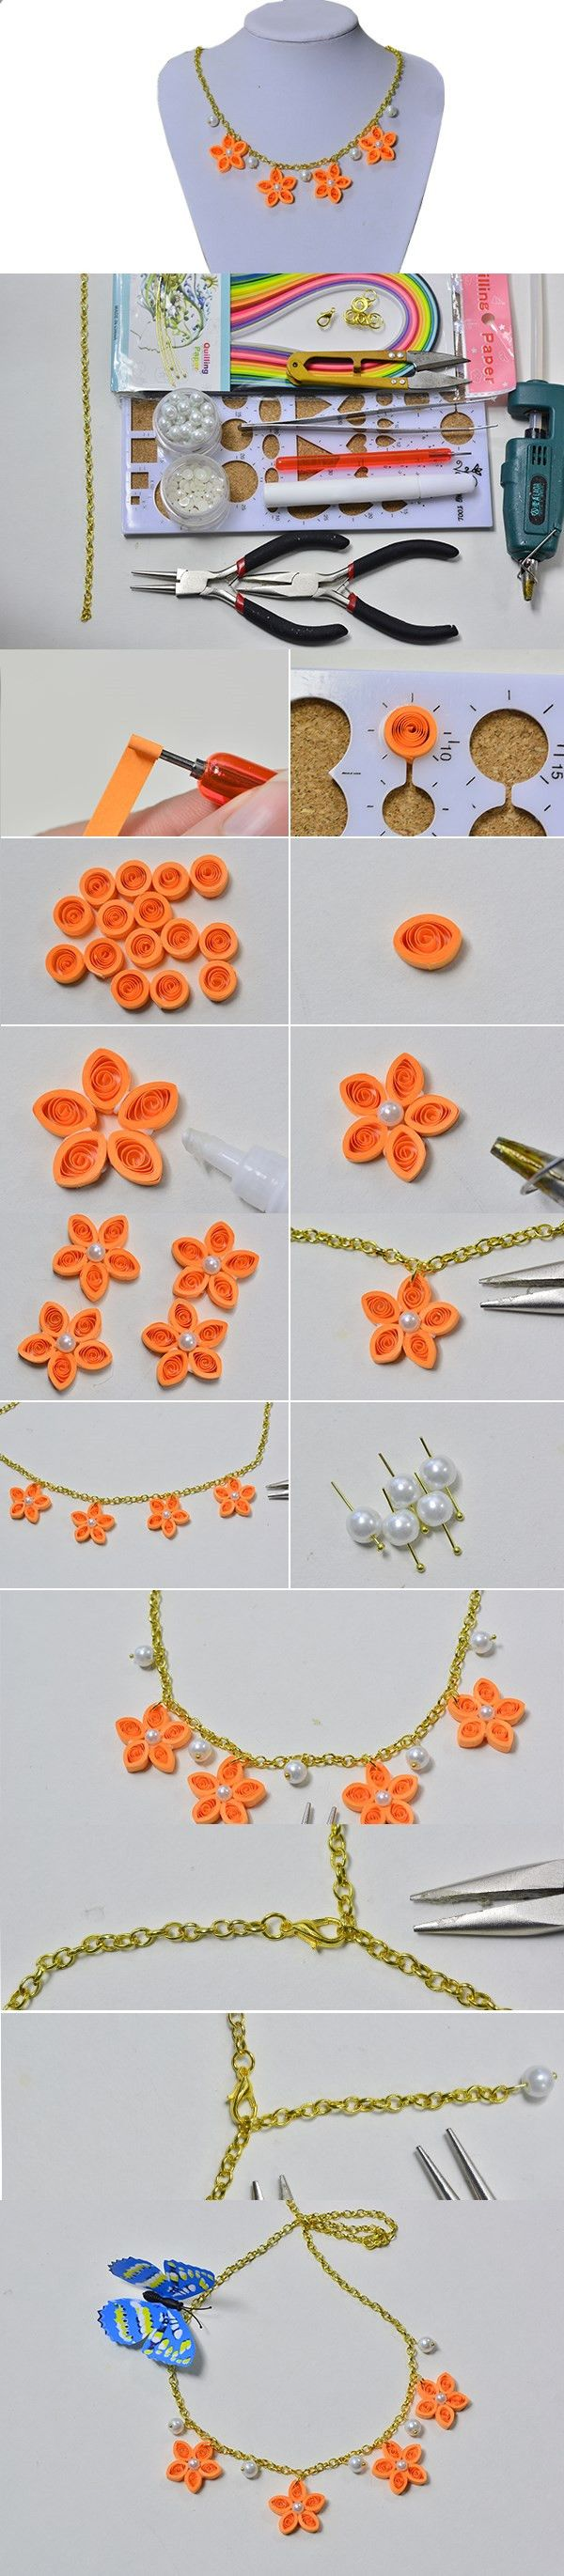 DIY Chain Necklaces with Quilling Flowers for Girls